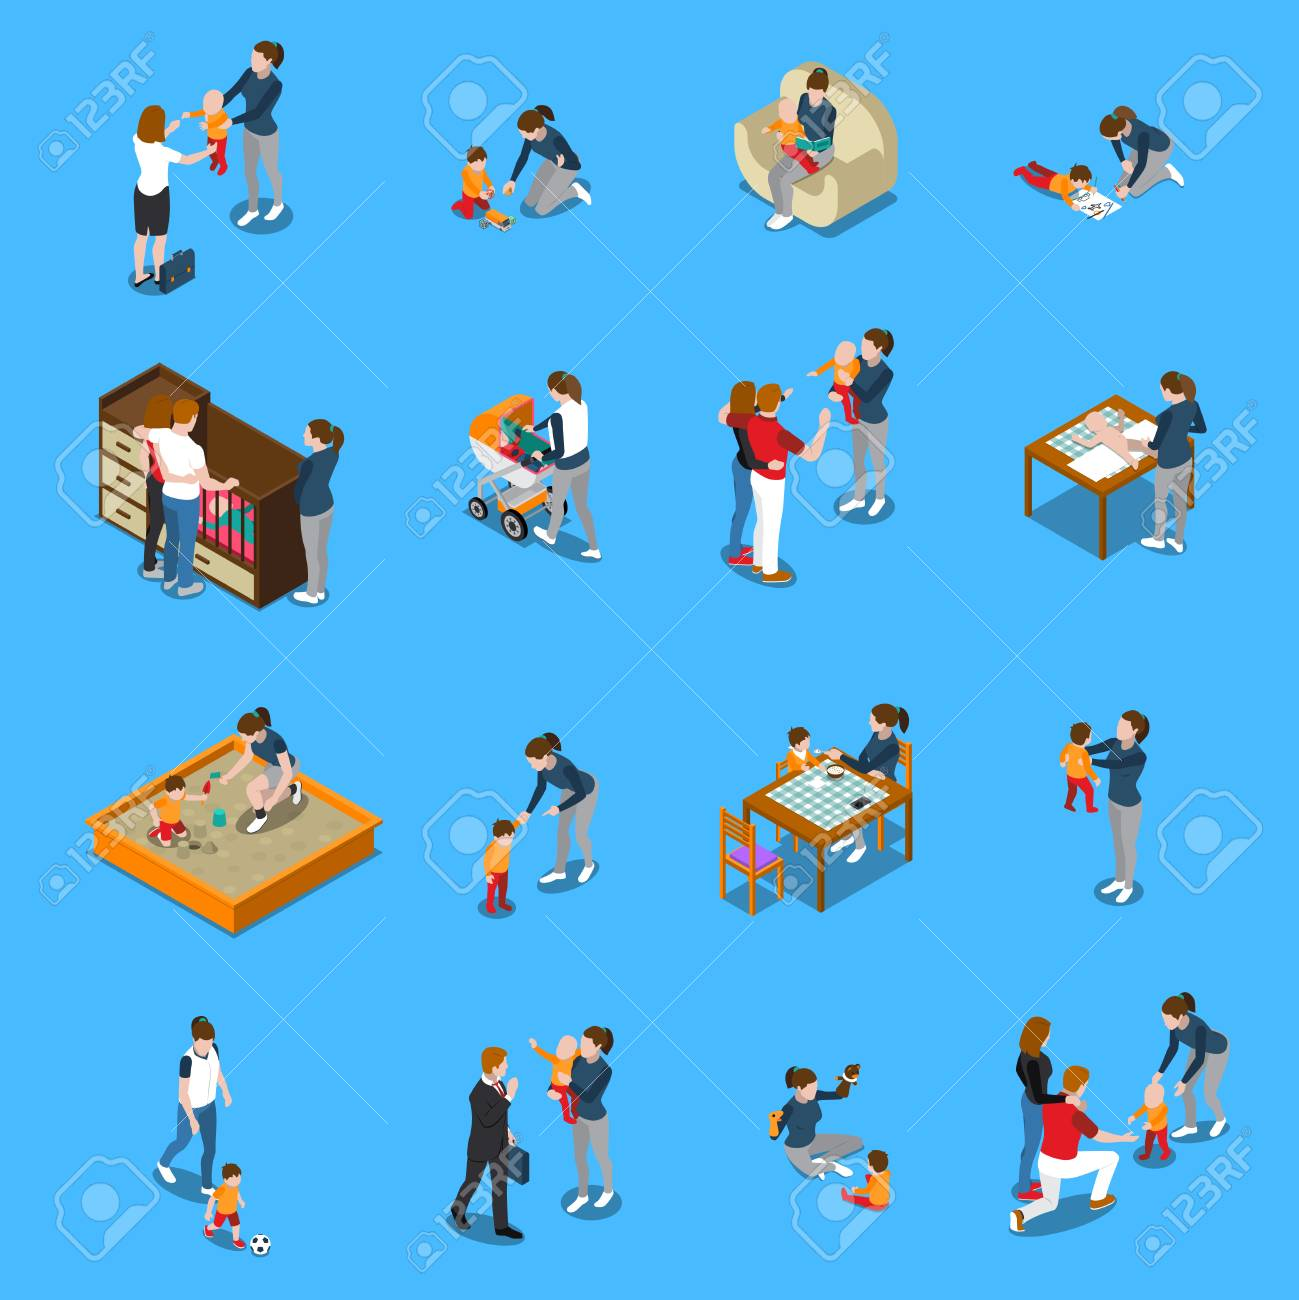 baby sitter during child care parents leaving for work isometric